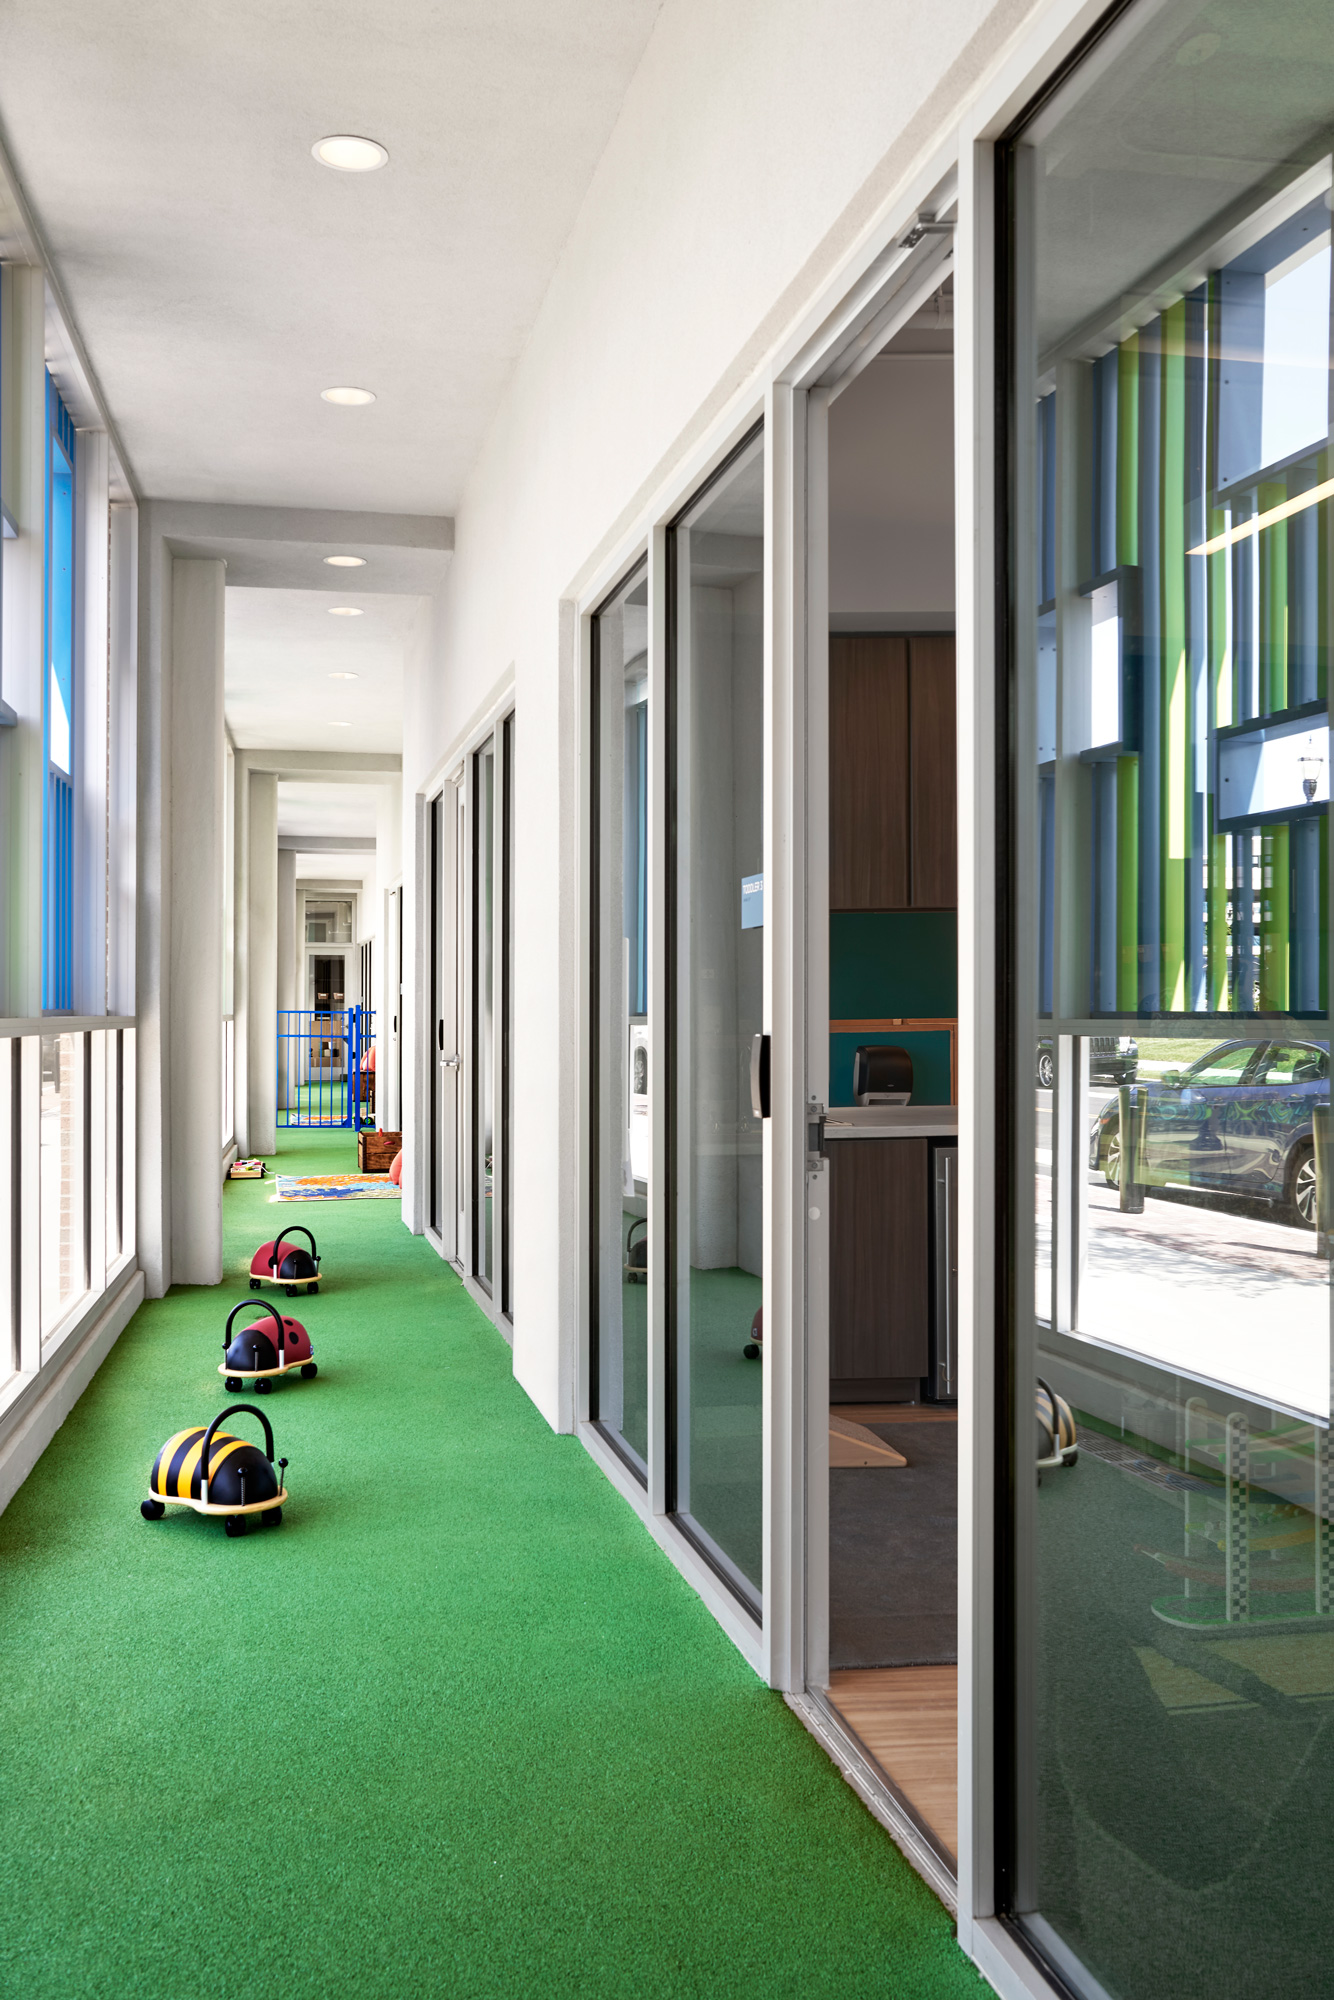 Architectural-Photograph-of-HCA-Childcare-Center-in-Nashville-Tennessee-by-Architectural-Photographer-Nick-McGinn-3.web.jpg